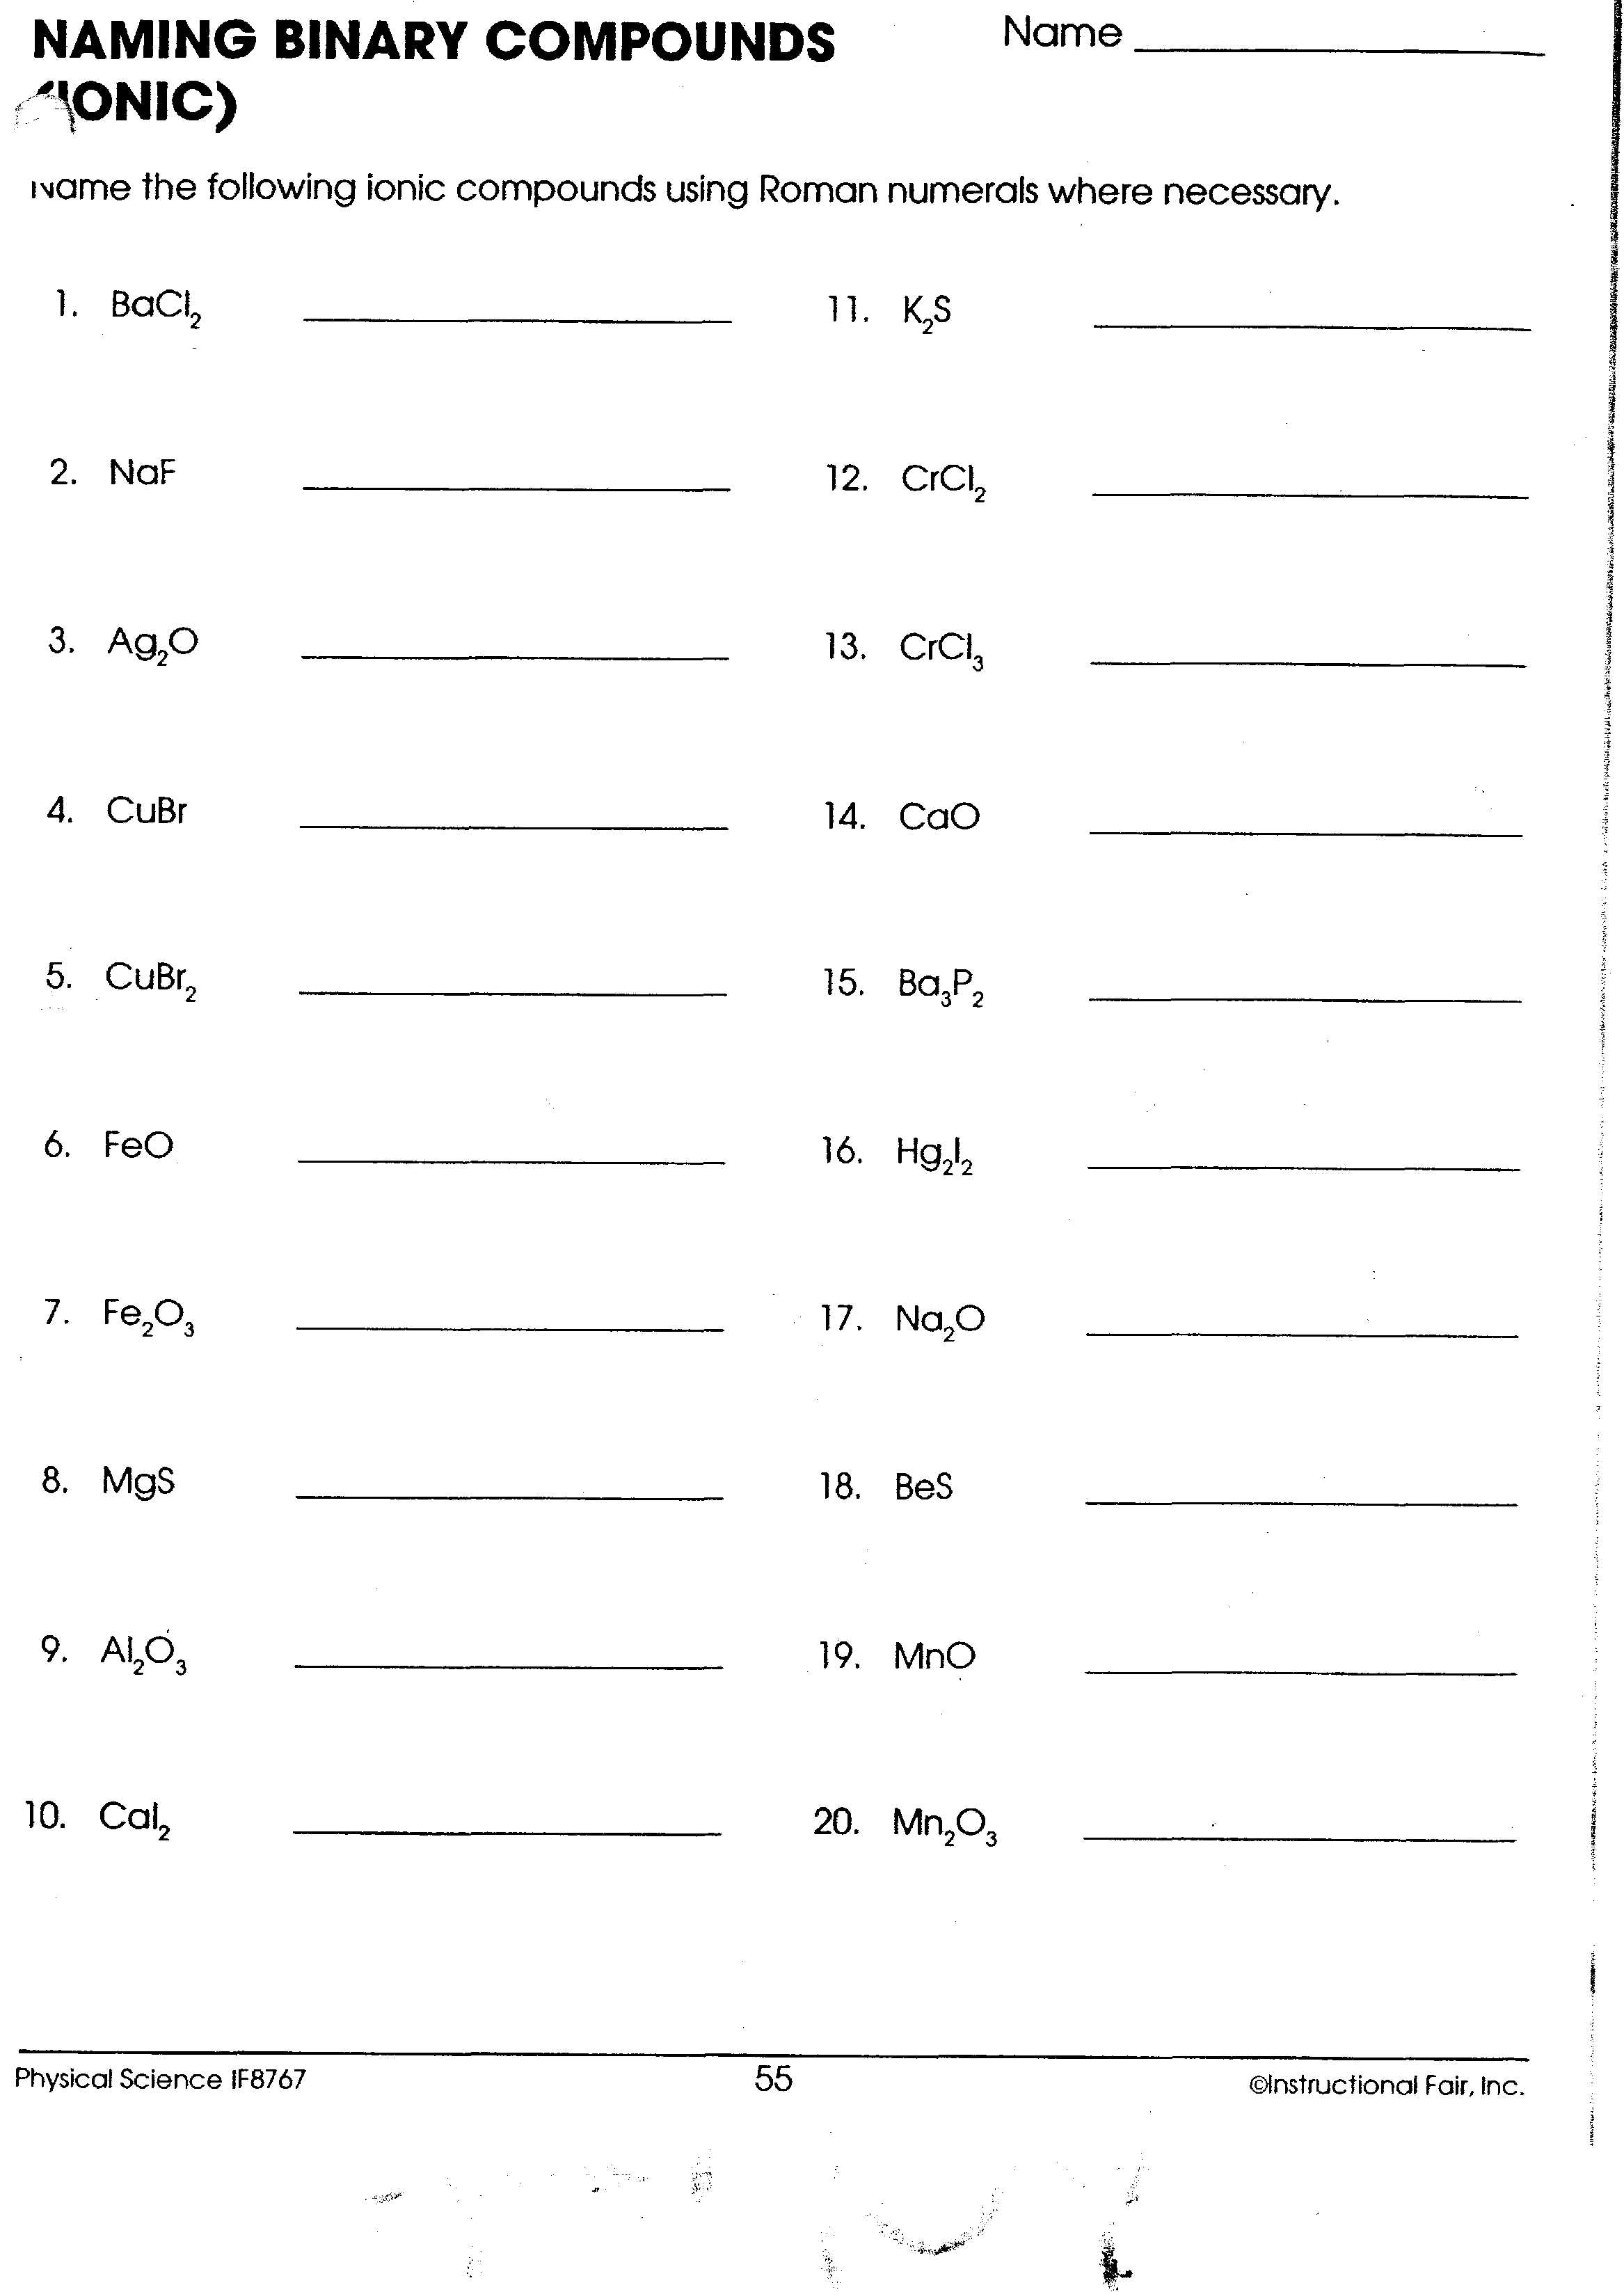 Naming Ionic Compounds Worksheet Answer Key - Thedesigngrid